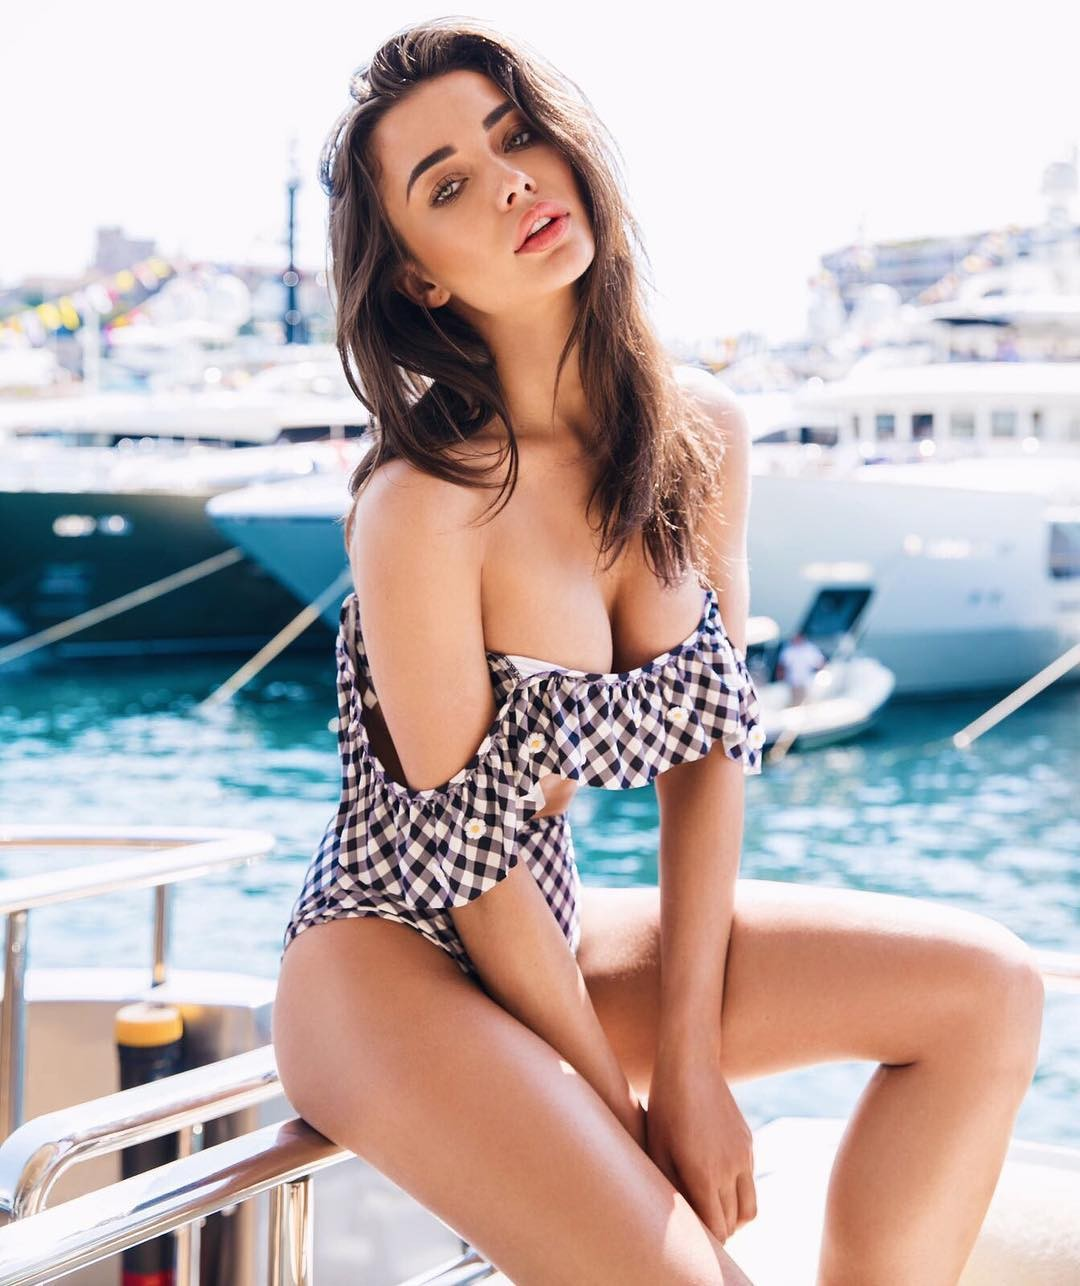 Amy Jackson Tits amy jackson nude, naked - pics and videos - imperiodefamosas